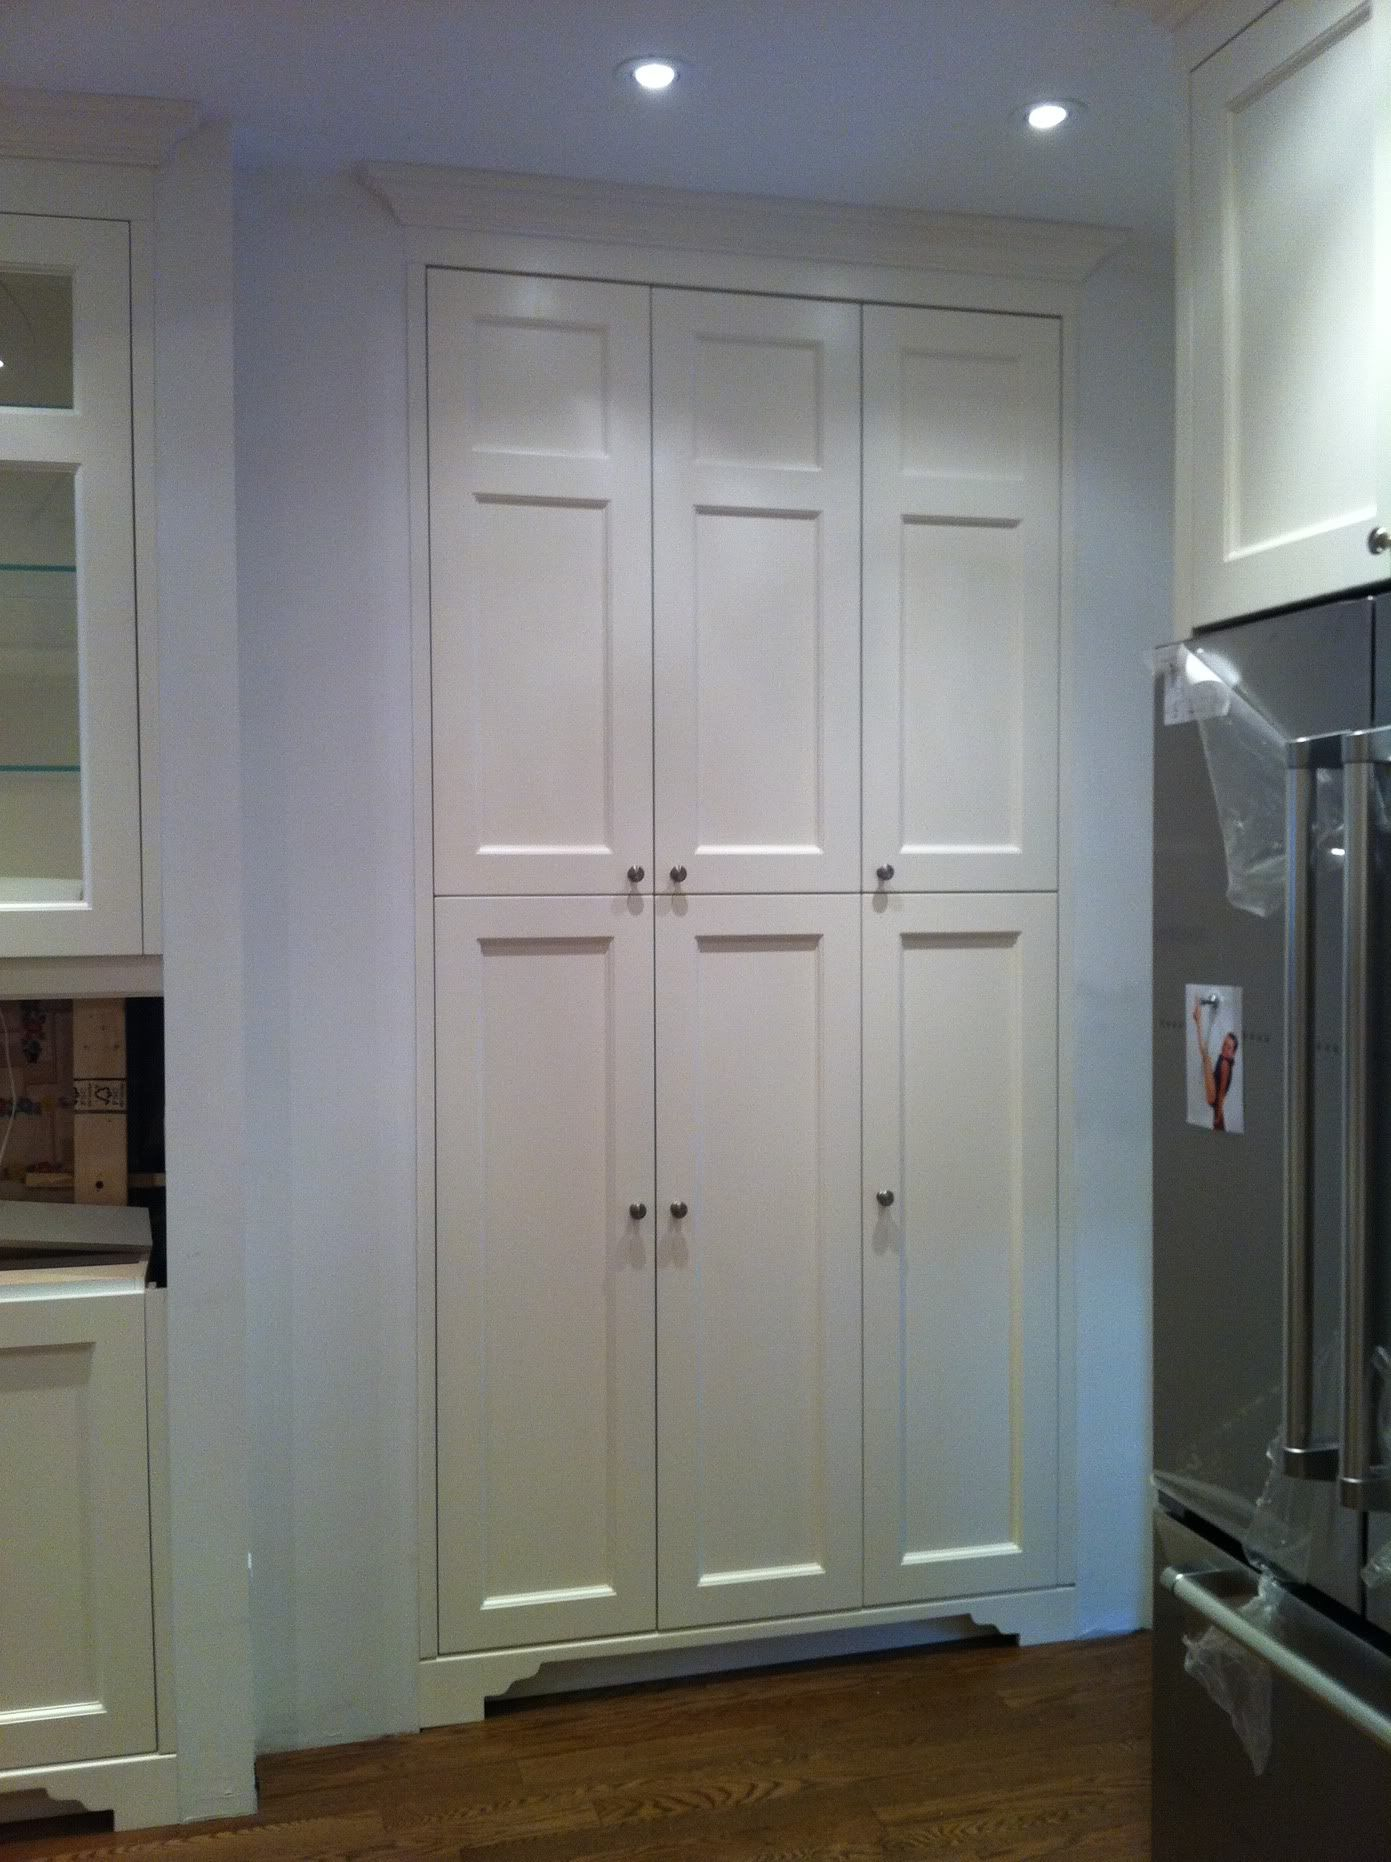 Pin By Linda Dietl On Love Storage Built In Pantry Pantry Cabinet Tall Kitchen Cabinets